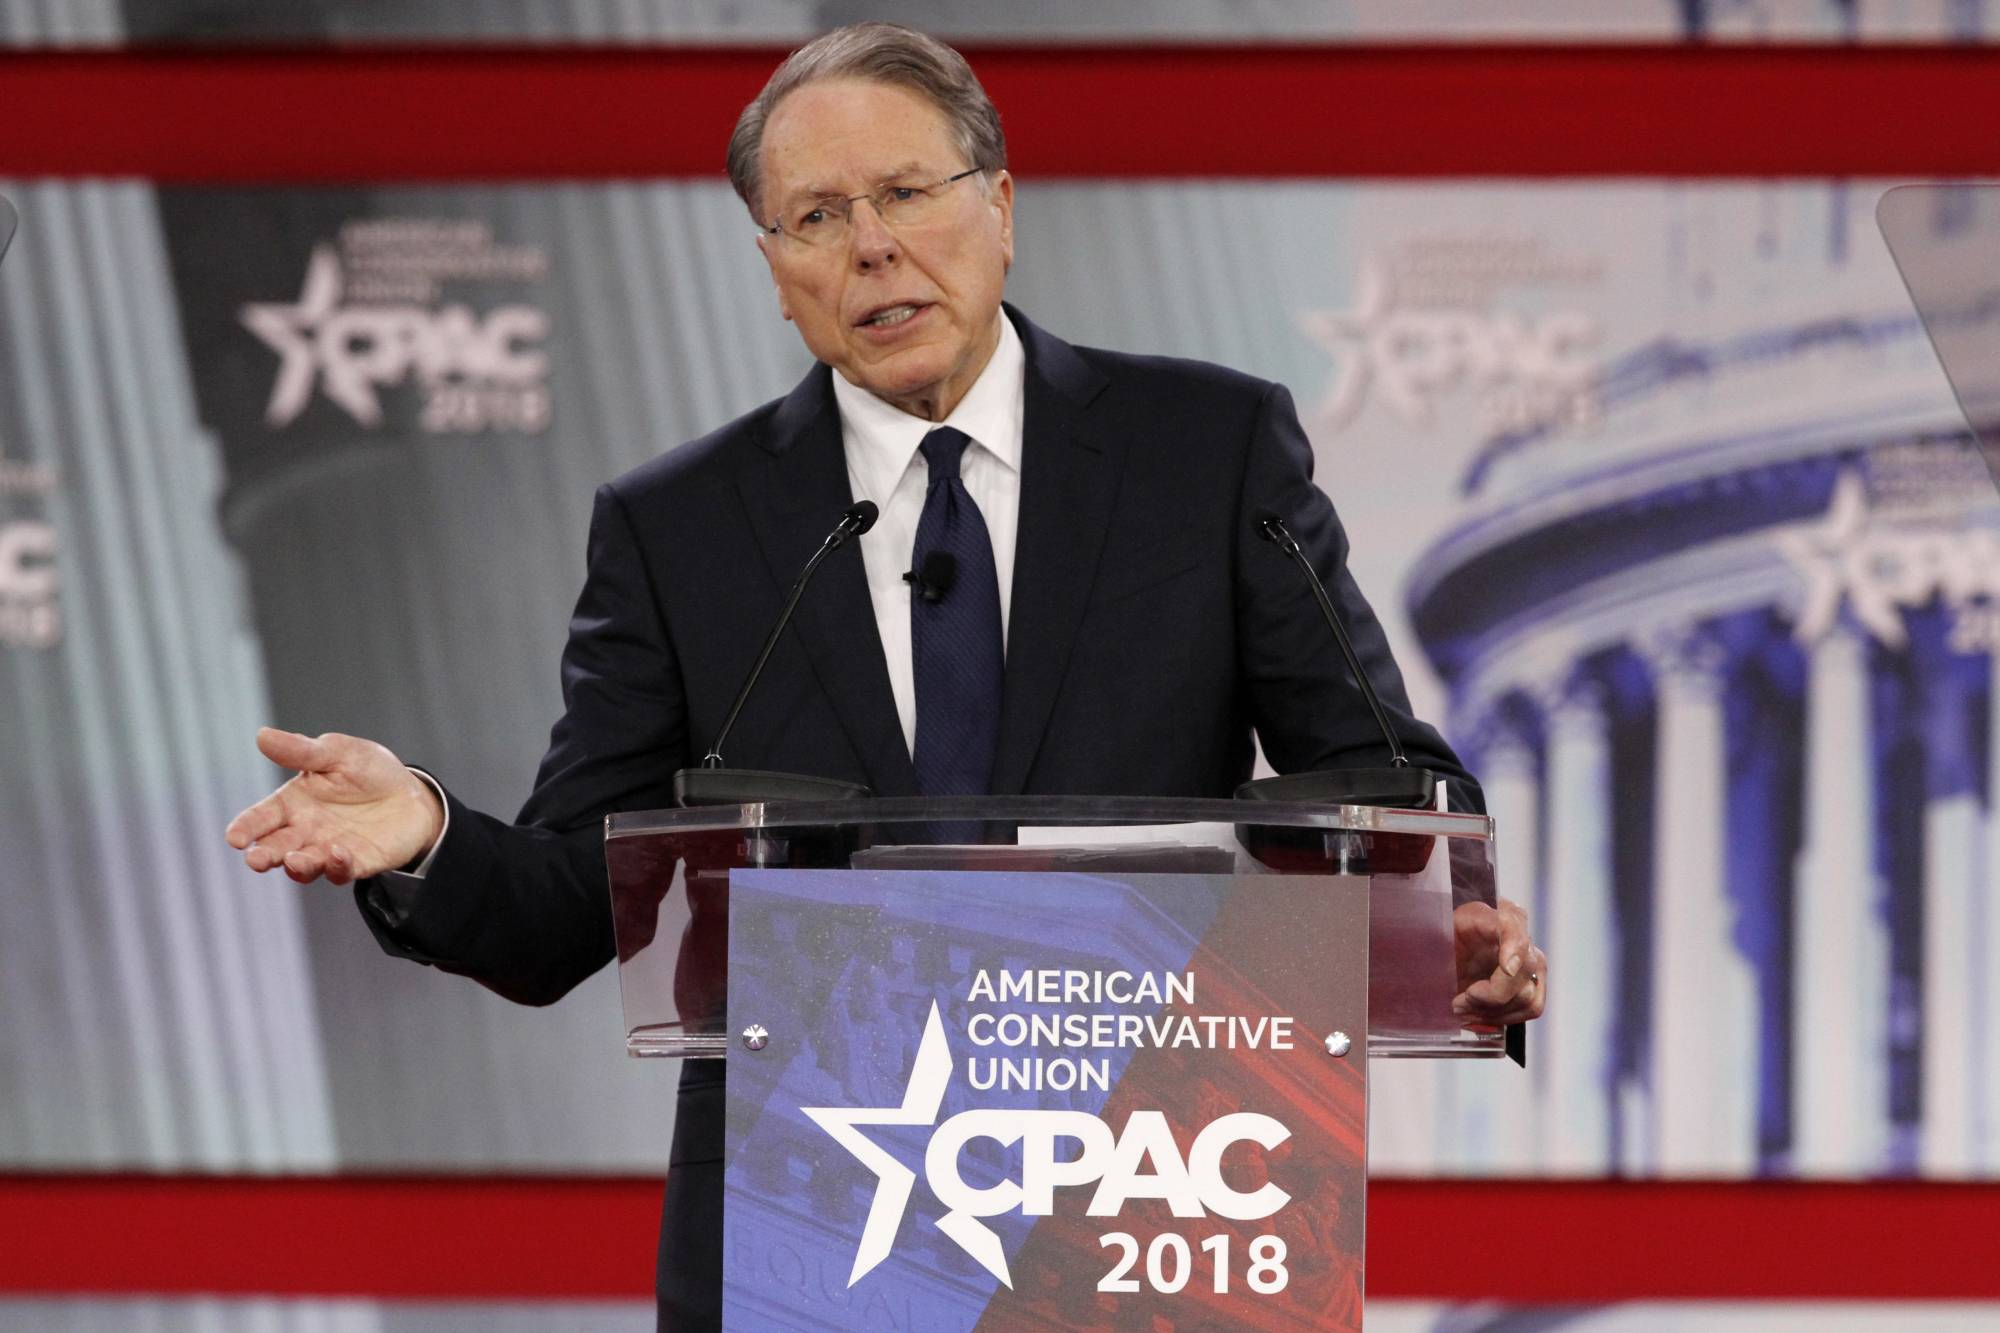 More companies end ties with NRA as pressure mounts | WTOP